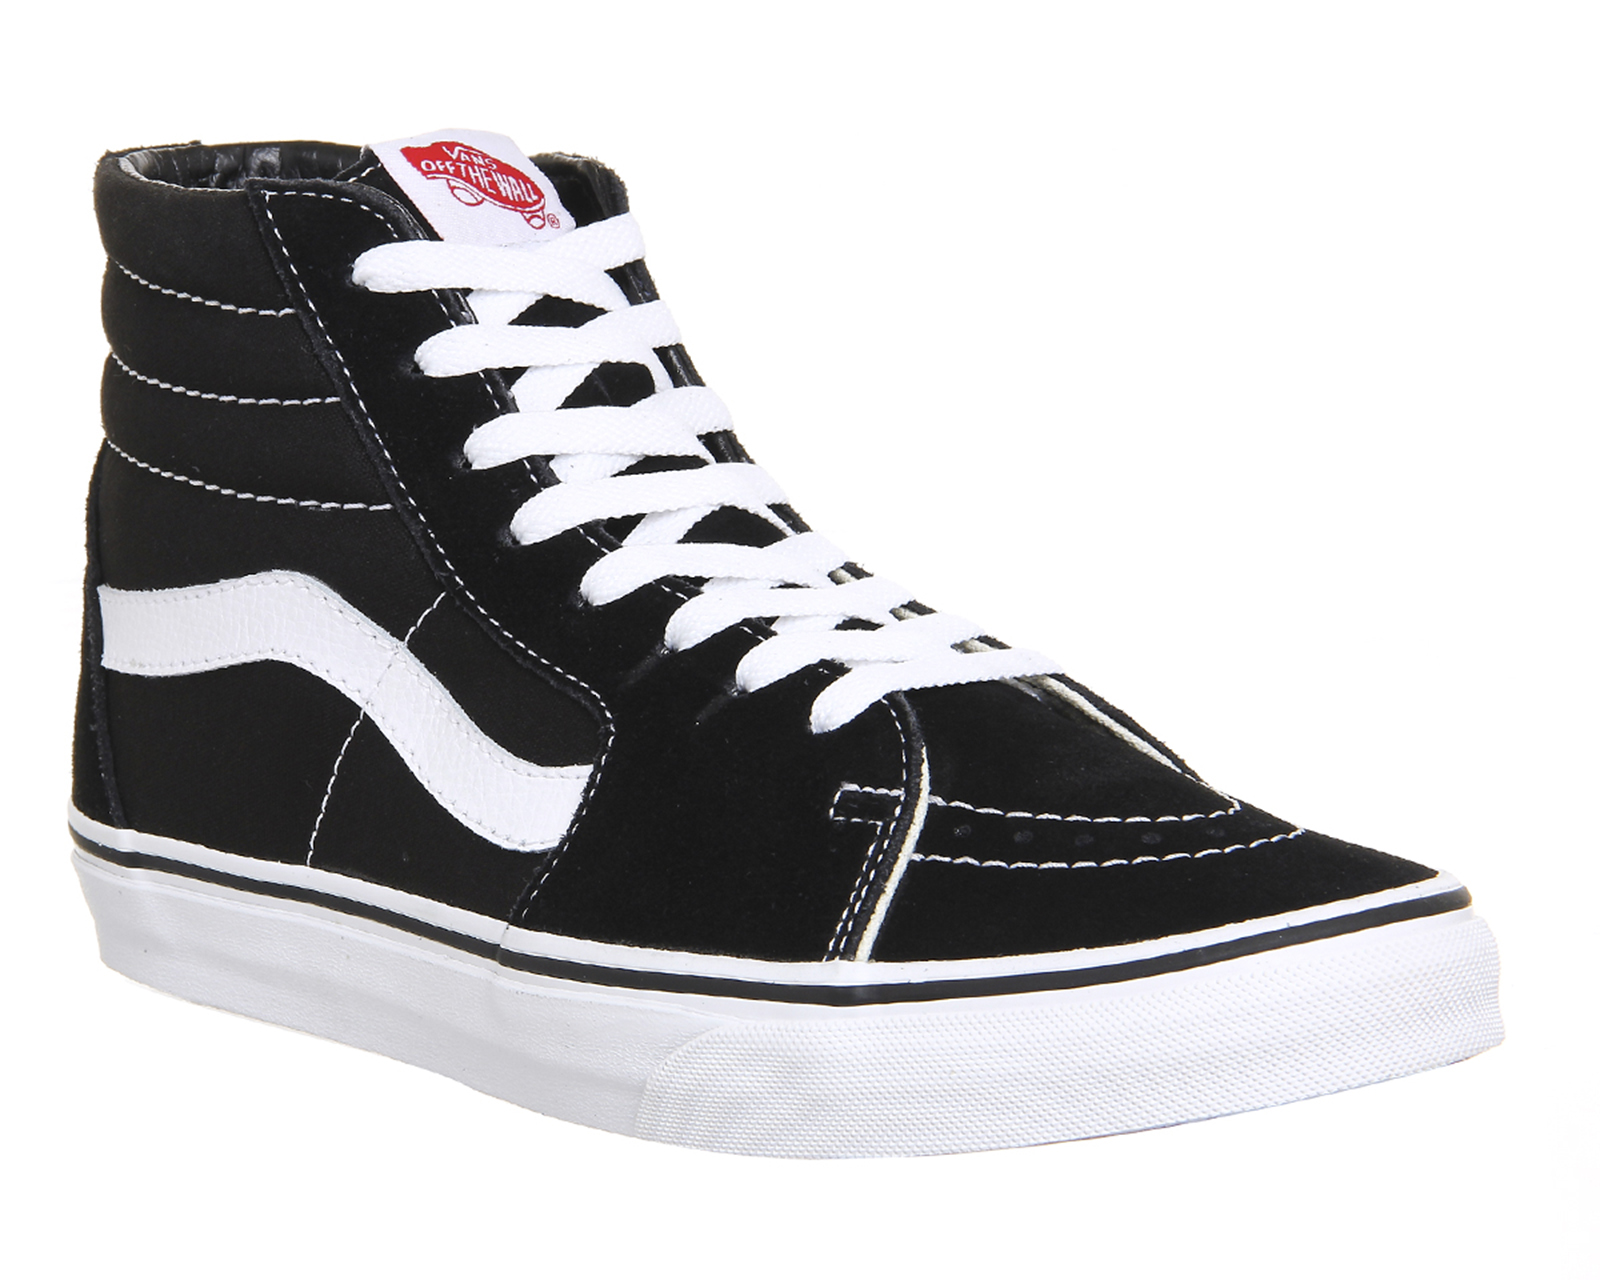 204c405bf7 Sentinel Womens Vans Sk8 Hi Black White Canvas Trainers Shoes